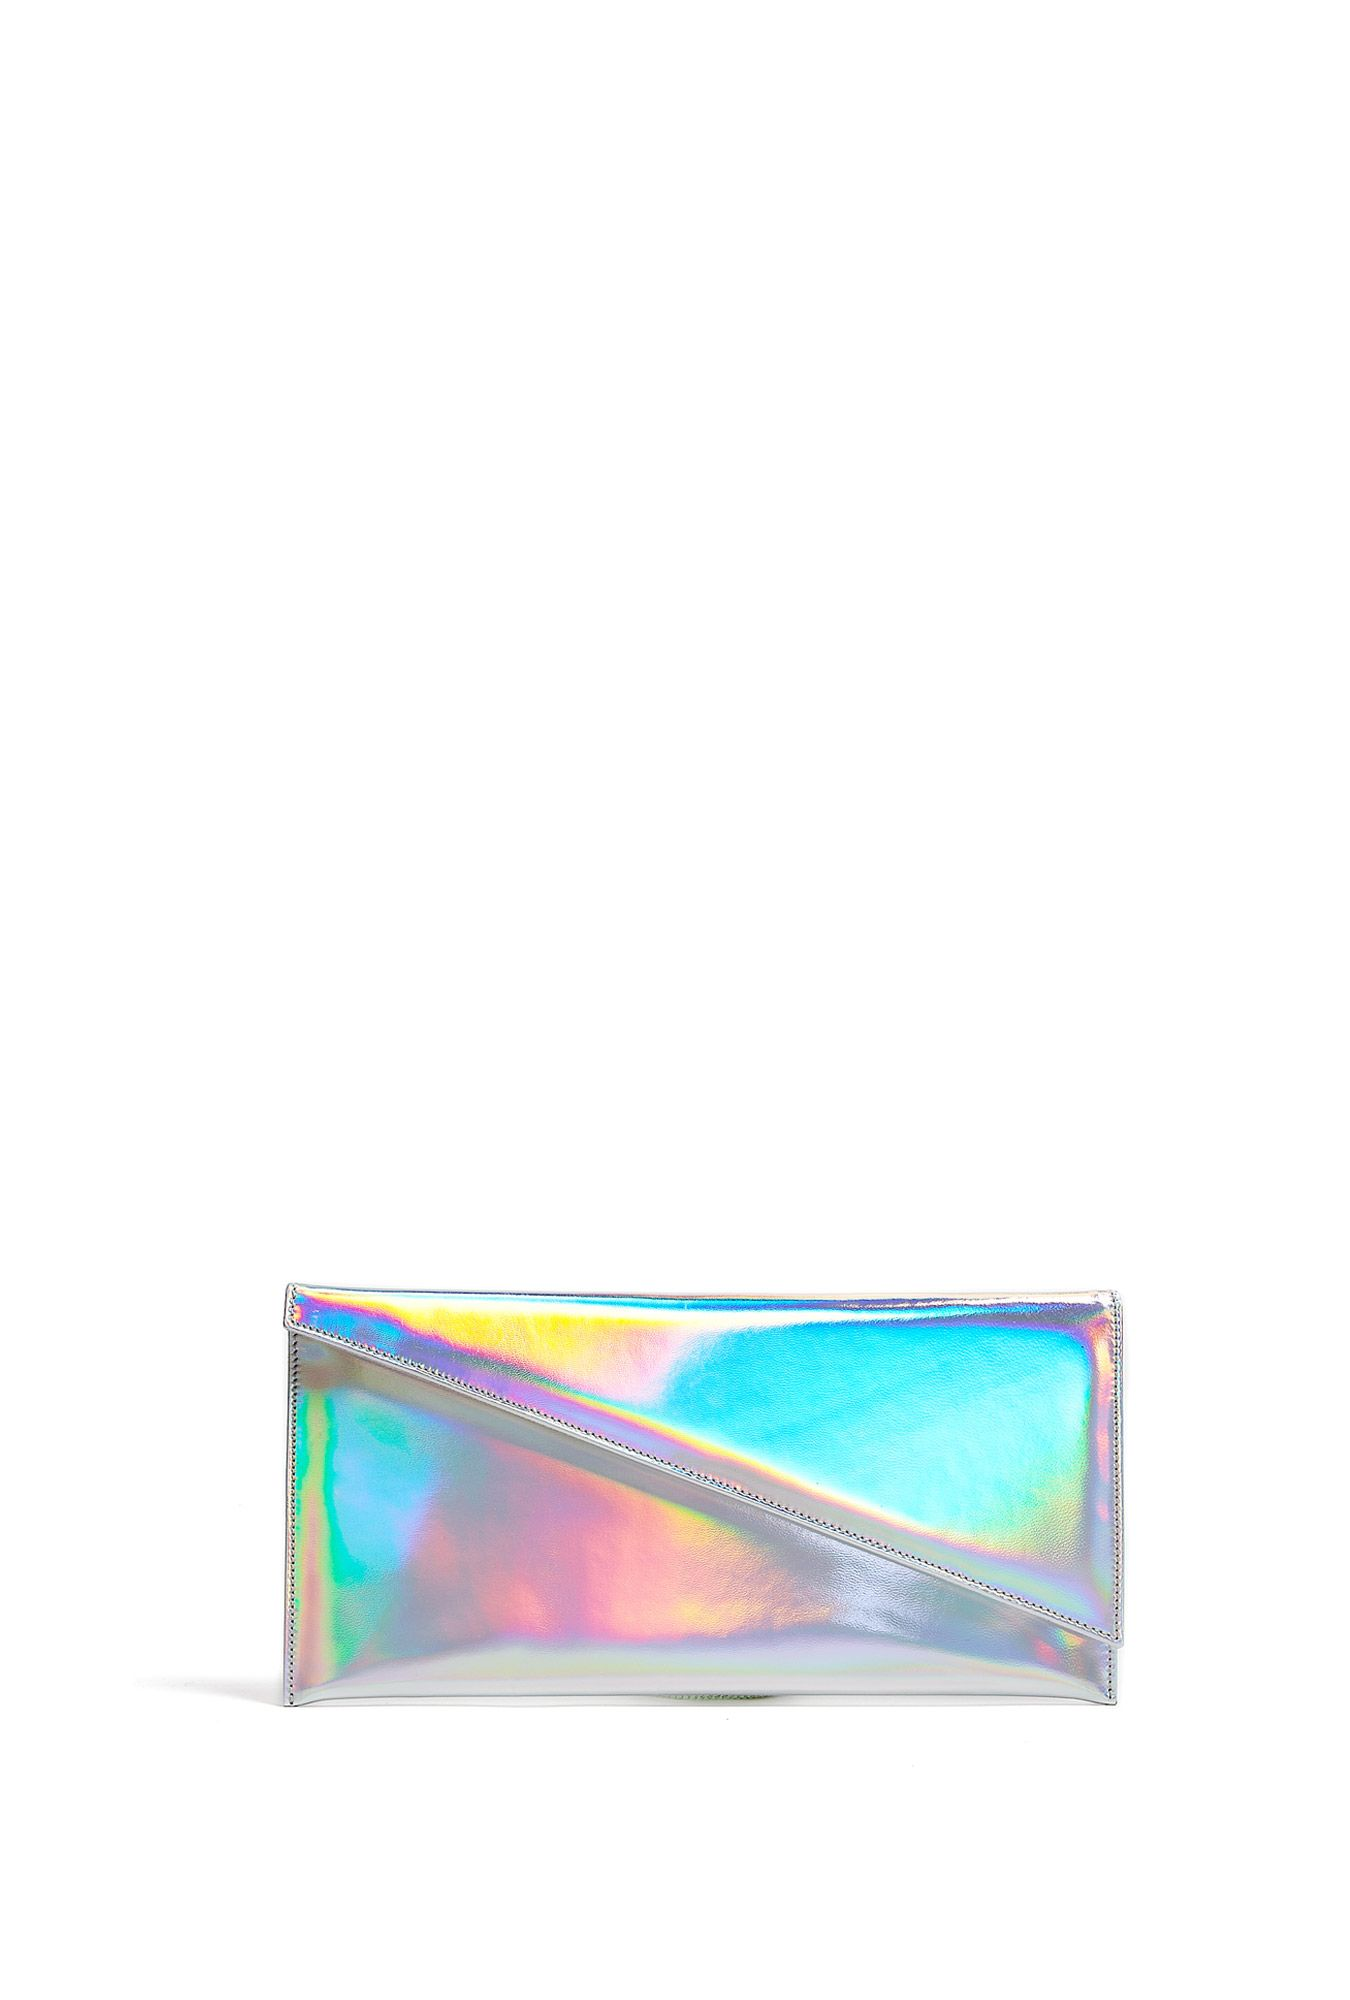 327b96eba621 Pin by Corinne Snoopy on Holographic